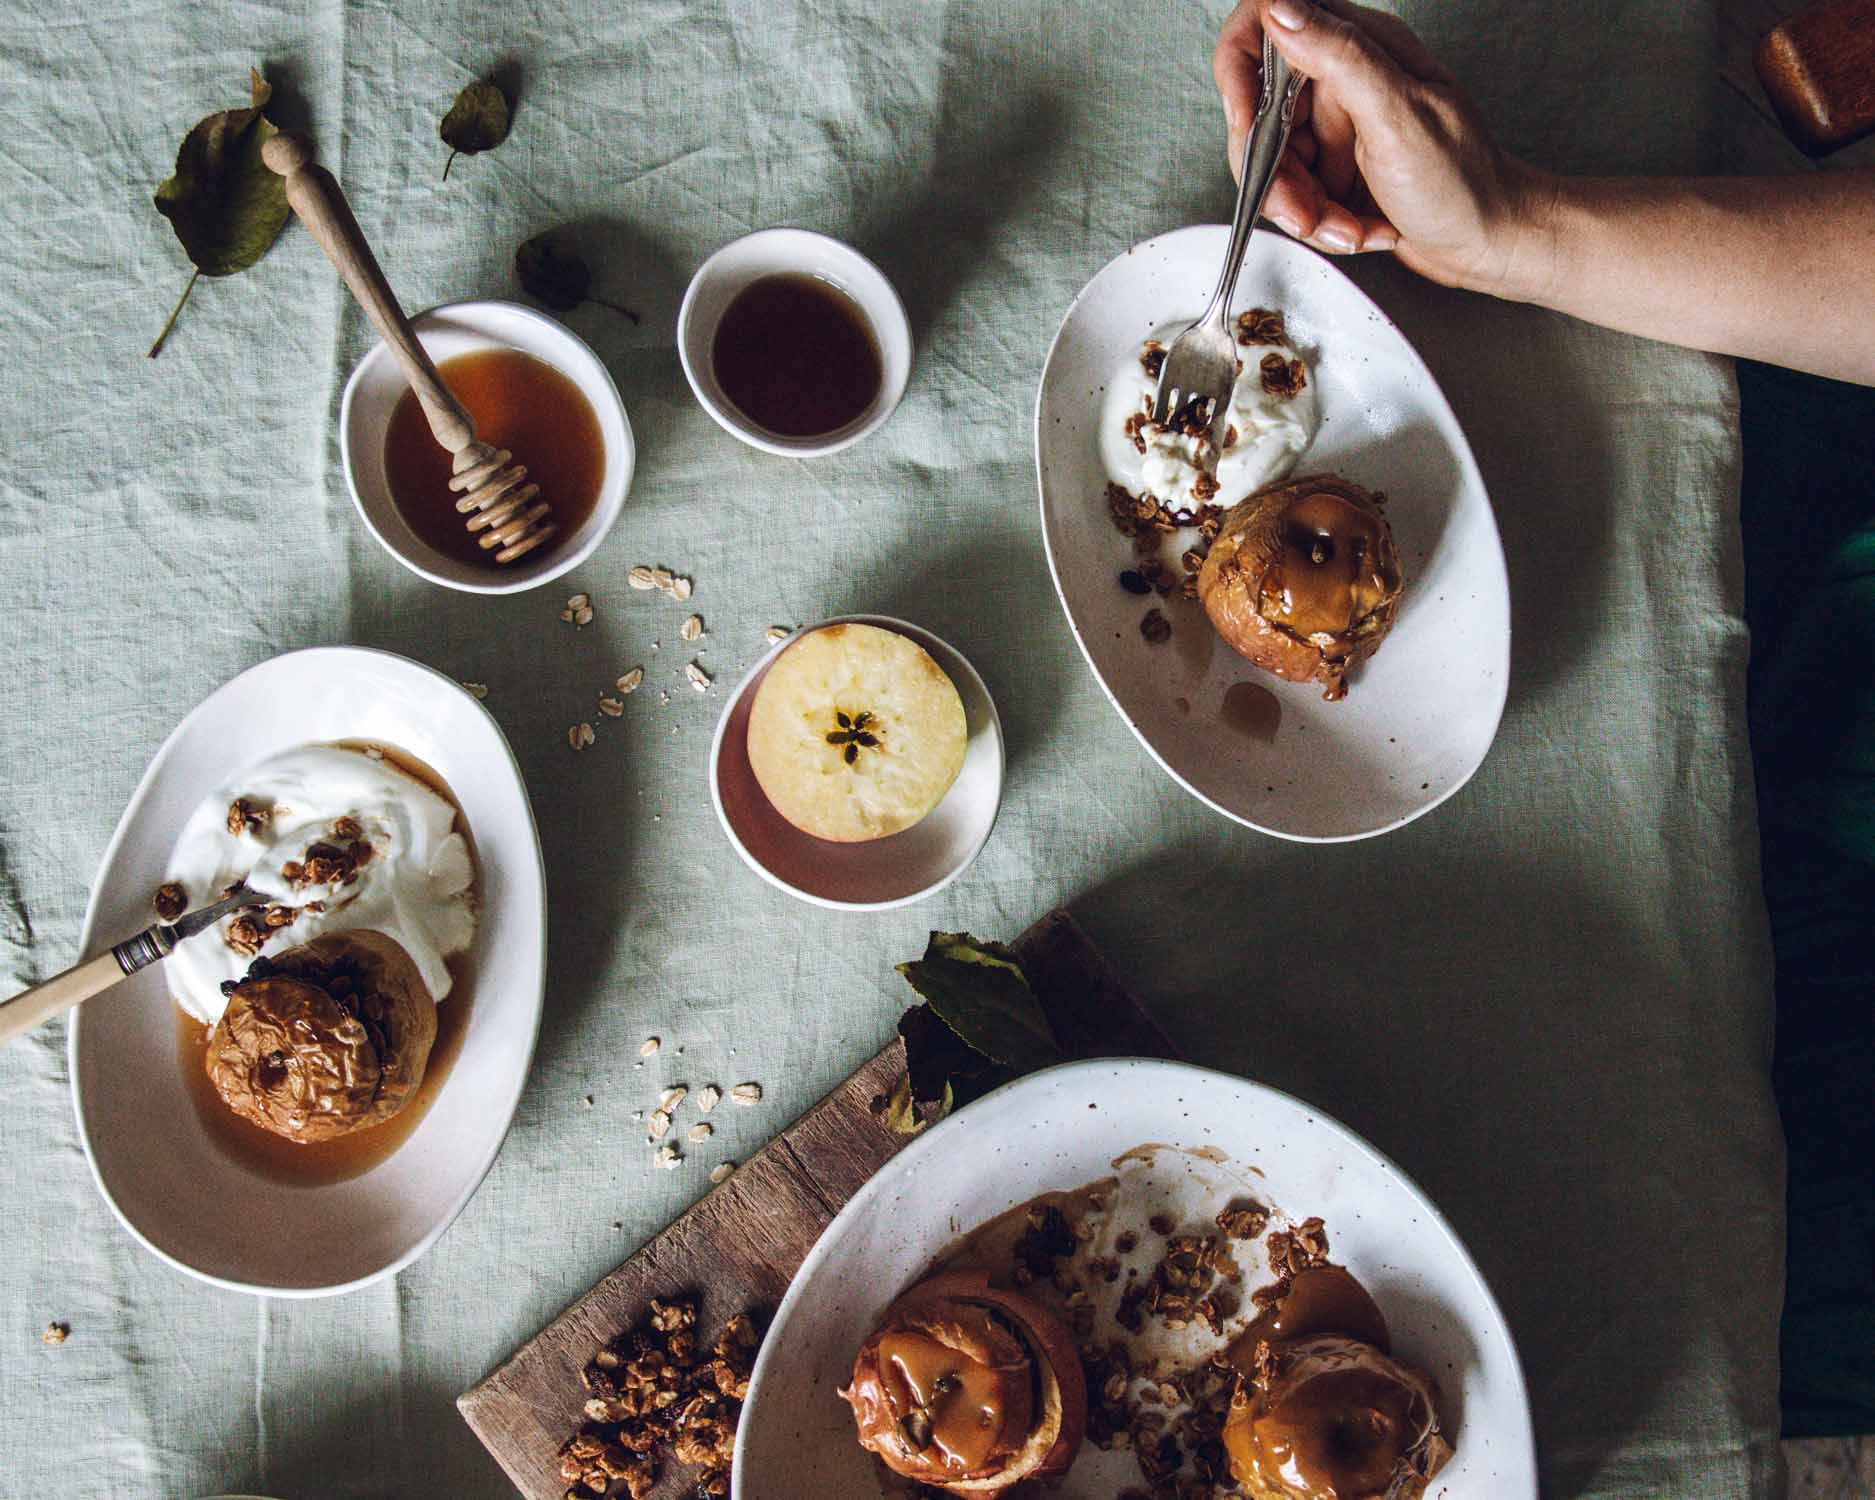 Table set with baked apples, syrup, yoghurt and tea.